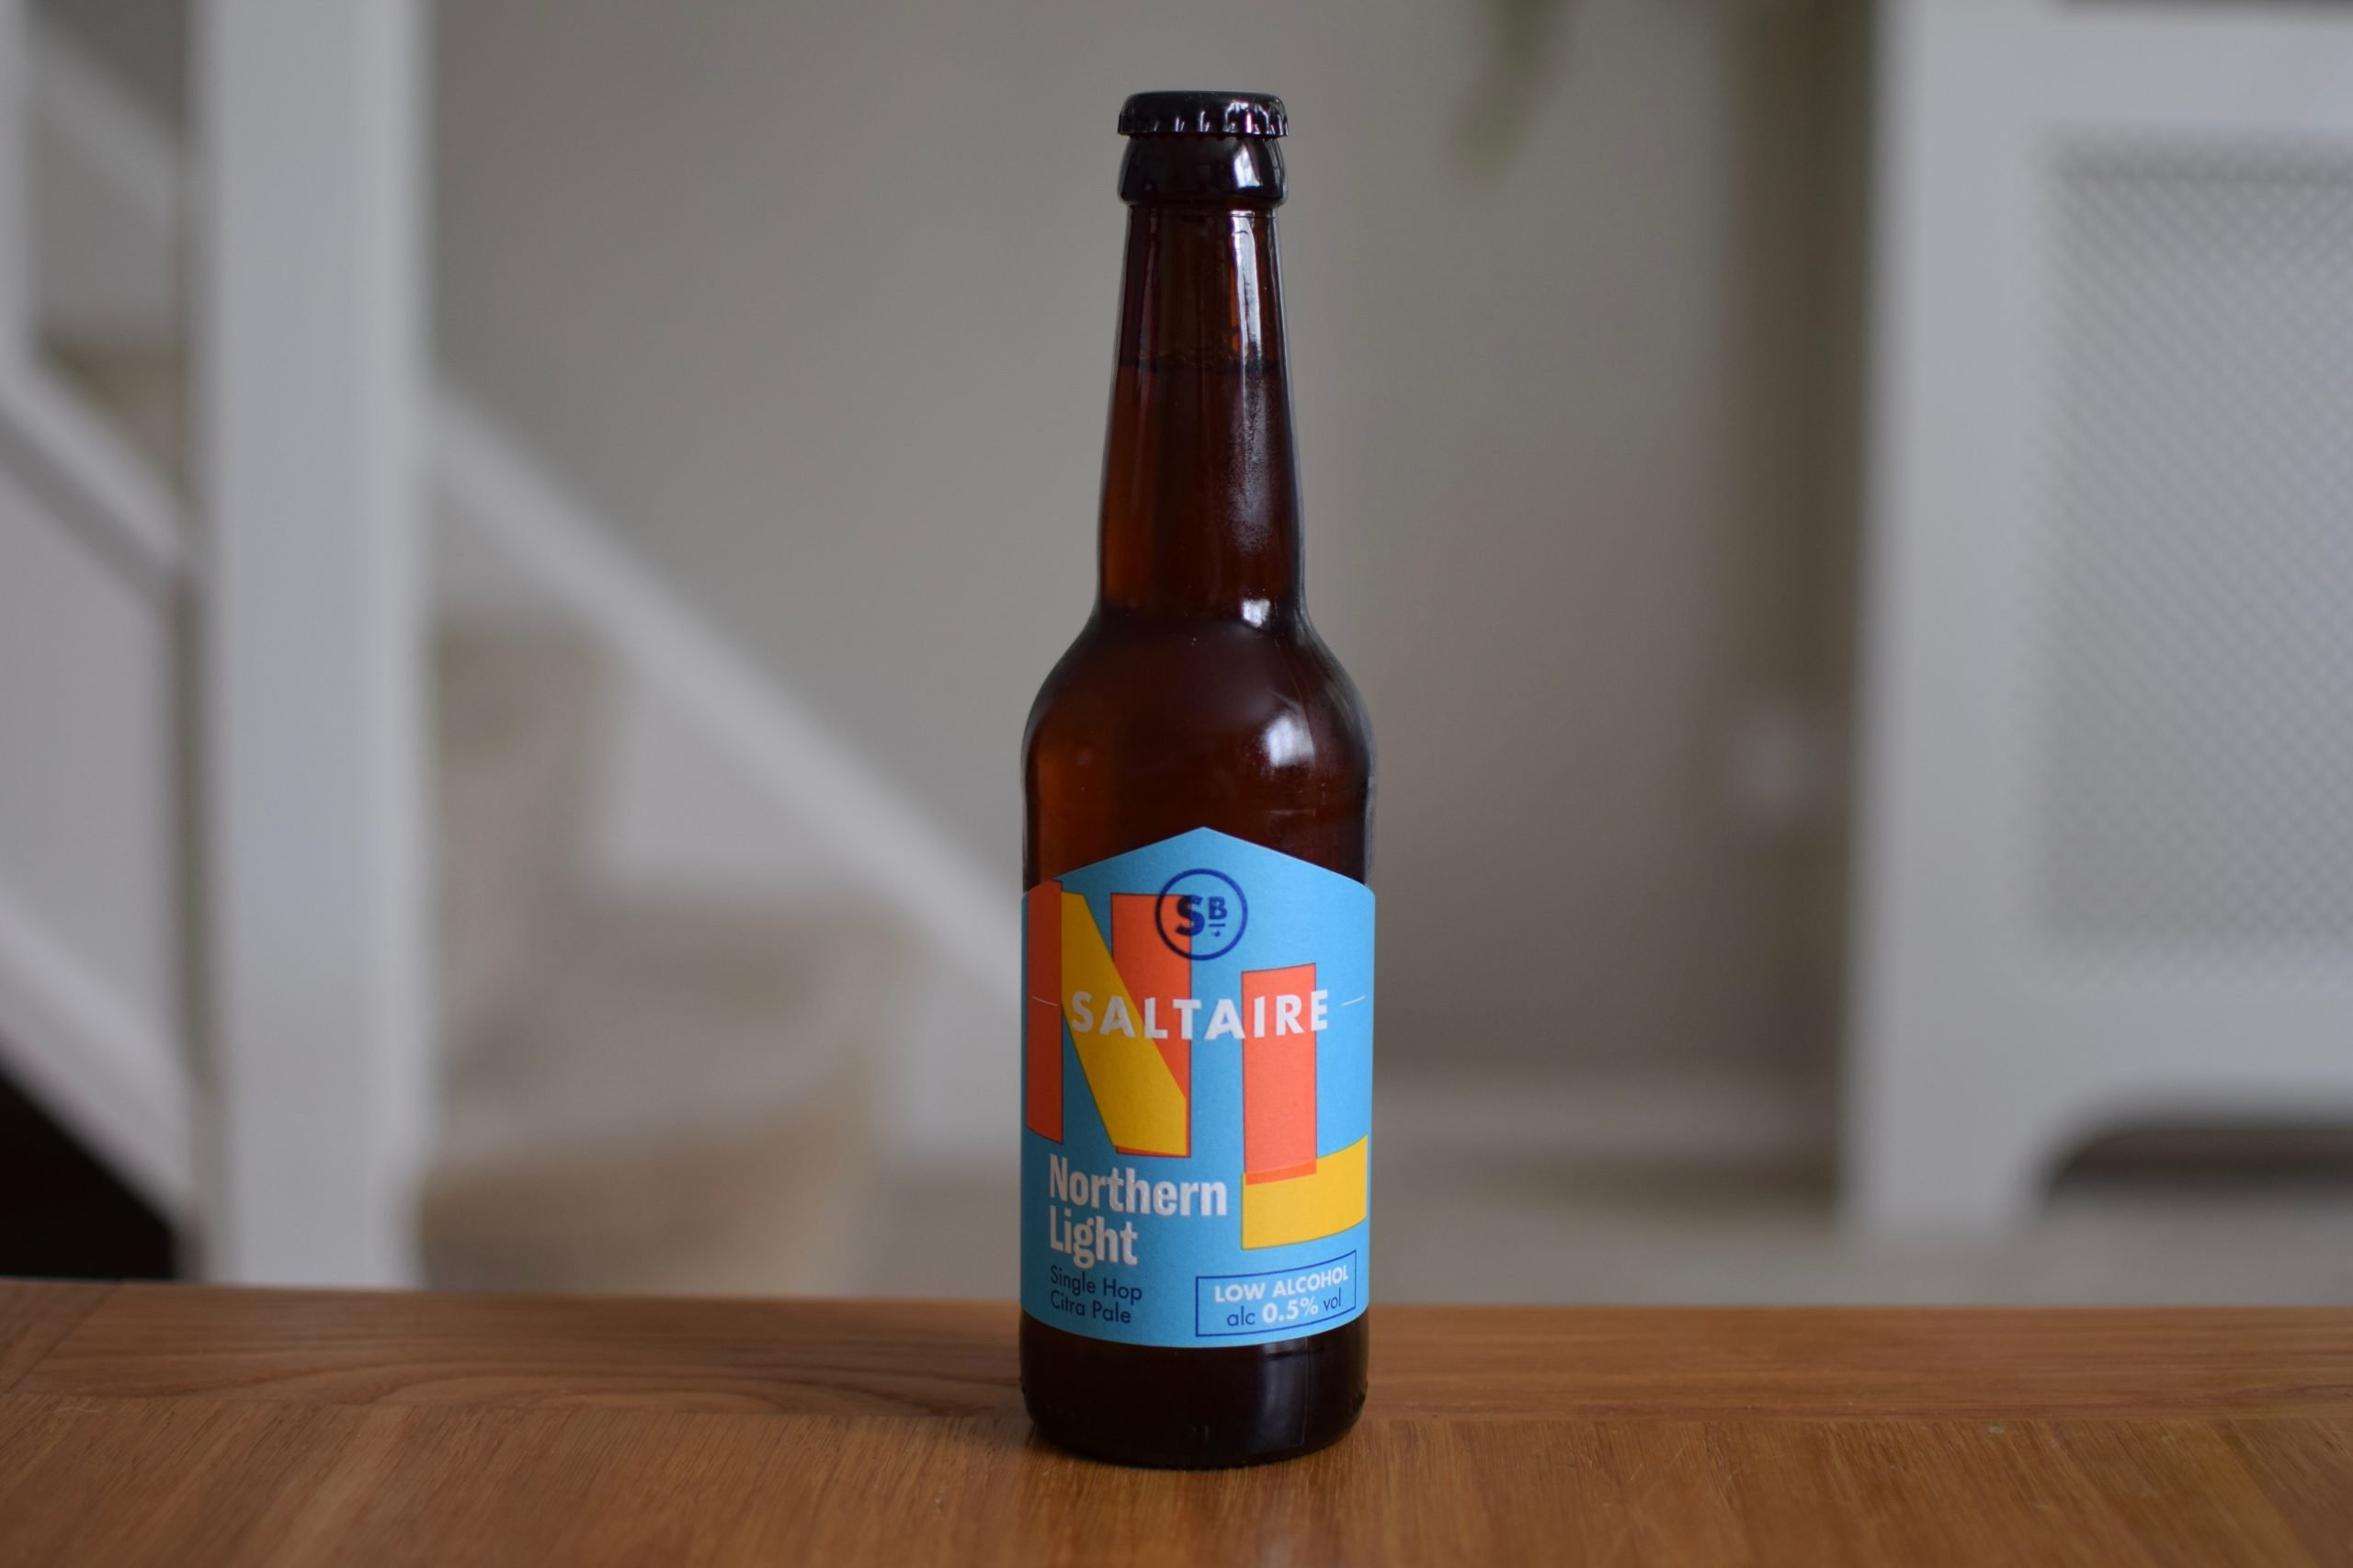 """""""Northern Light"""" (0.5%) by Saltaire Brewery"""